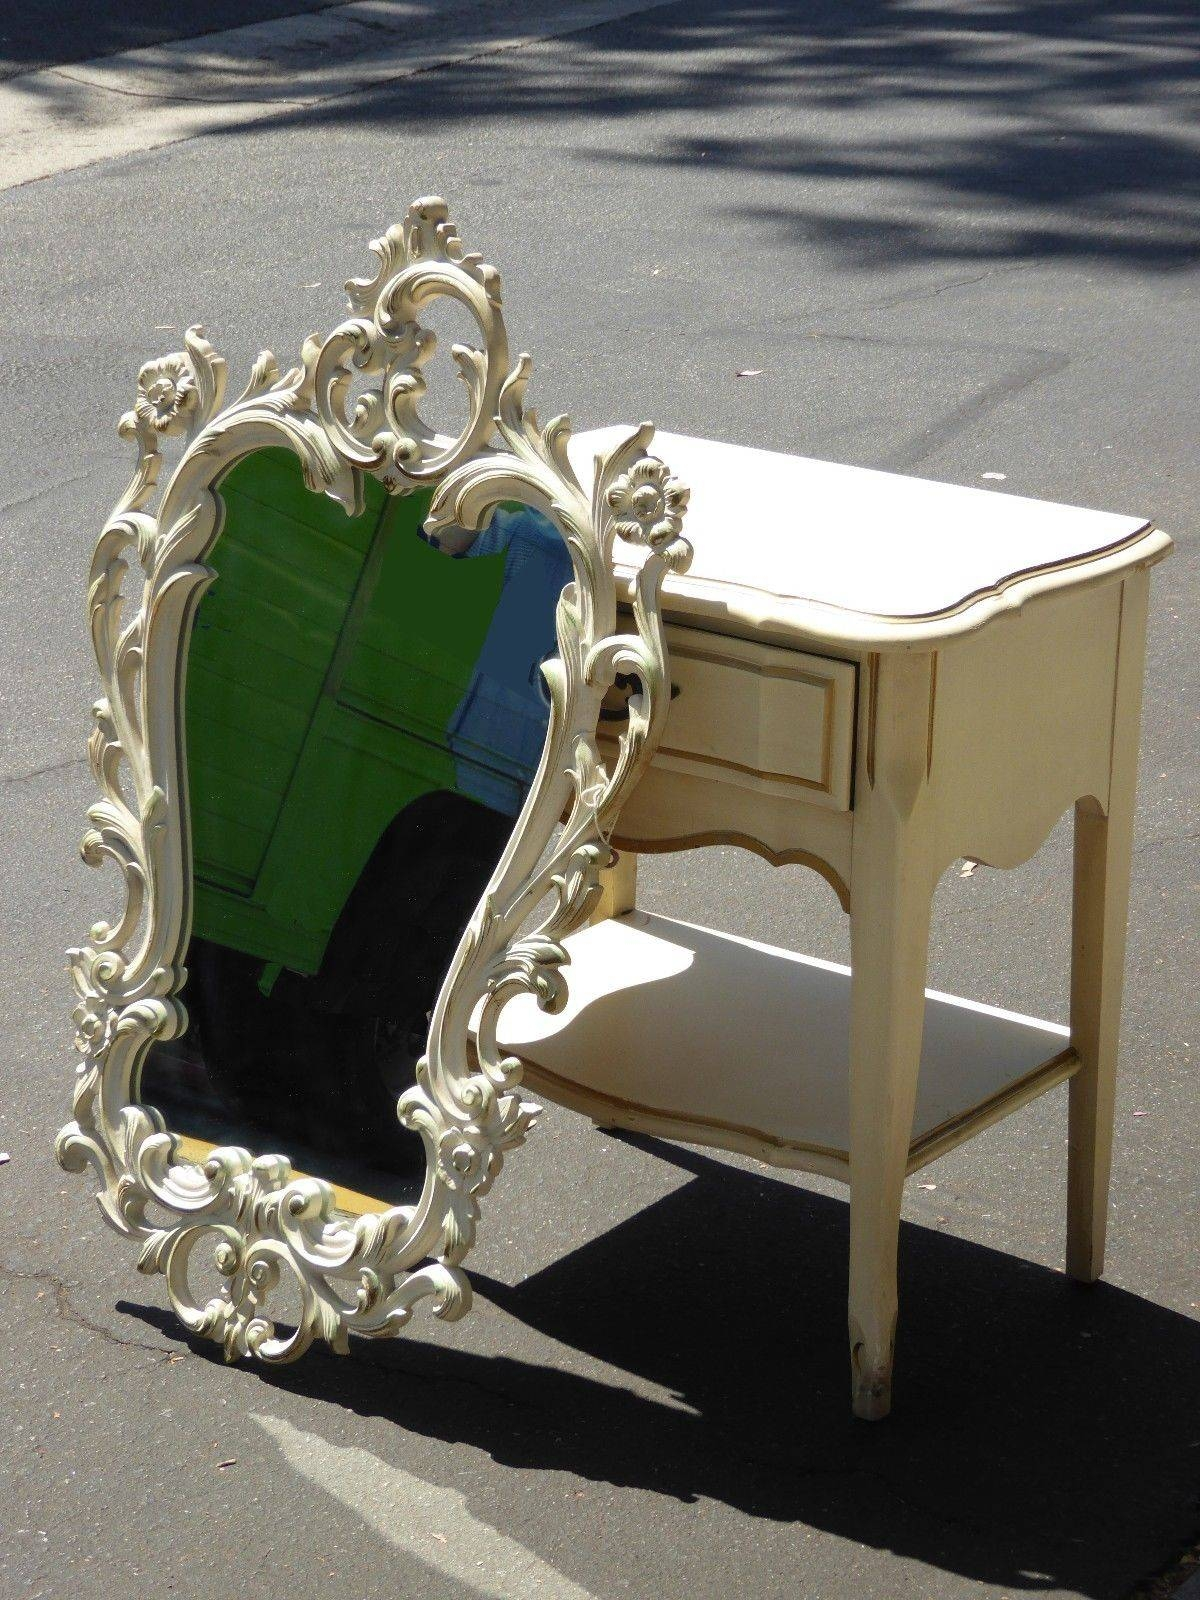 Vintage Rococo Style Ornate White Floral Design Wall Mirror intended for Rococo Style Mirrors (Image 13 of 15)